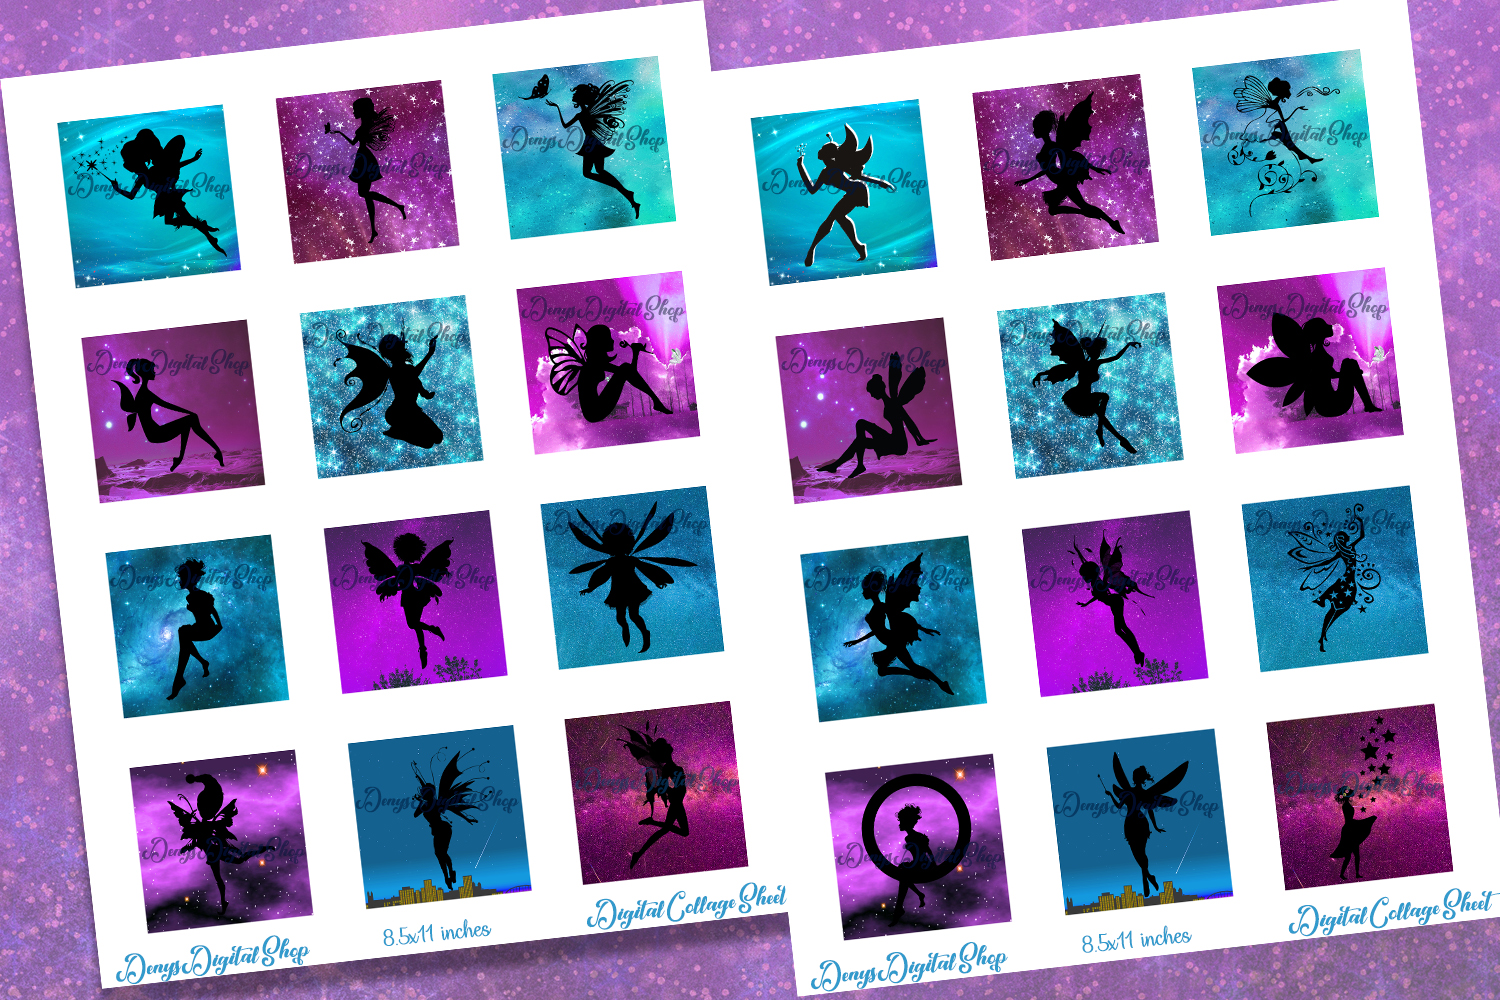 Fairies Silhouettes,Squares Digital Collage Sheet,Shine example image 2